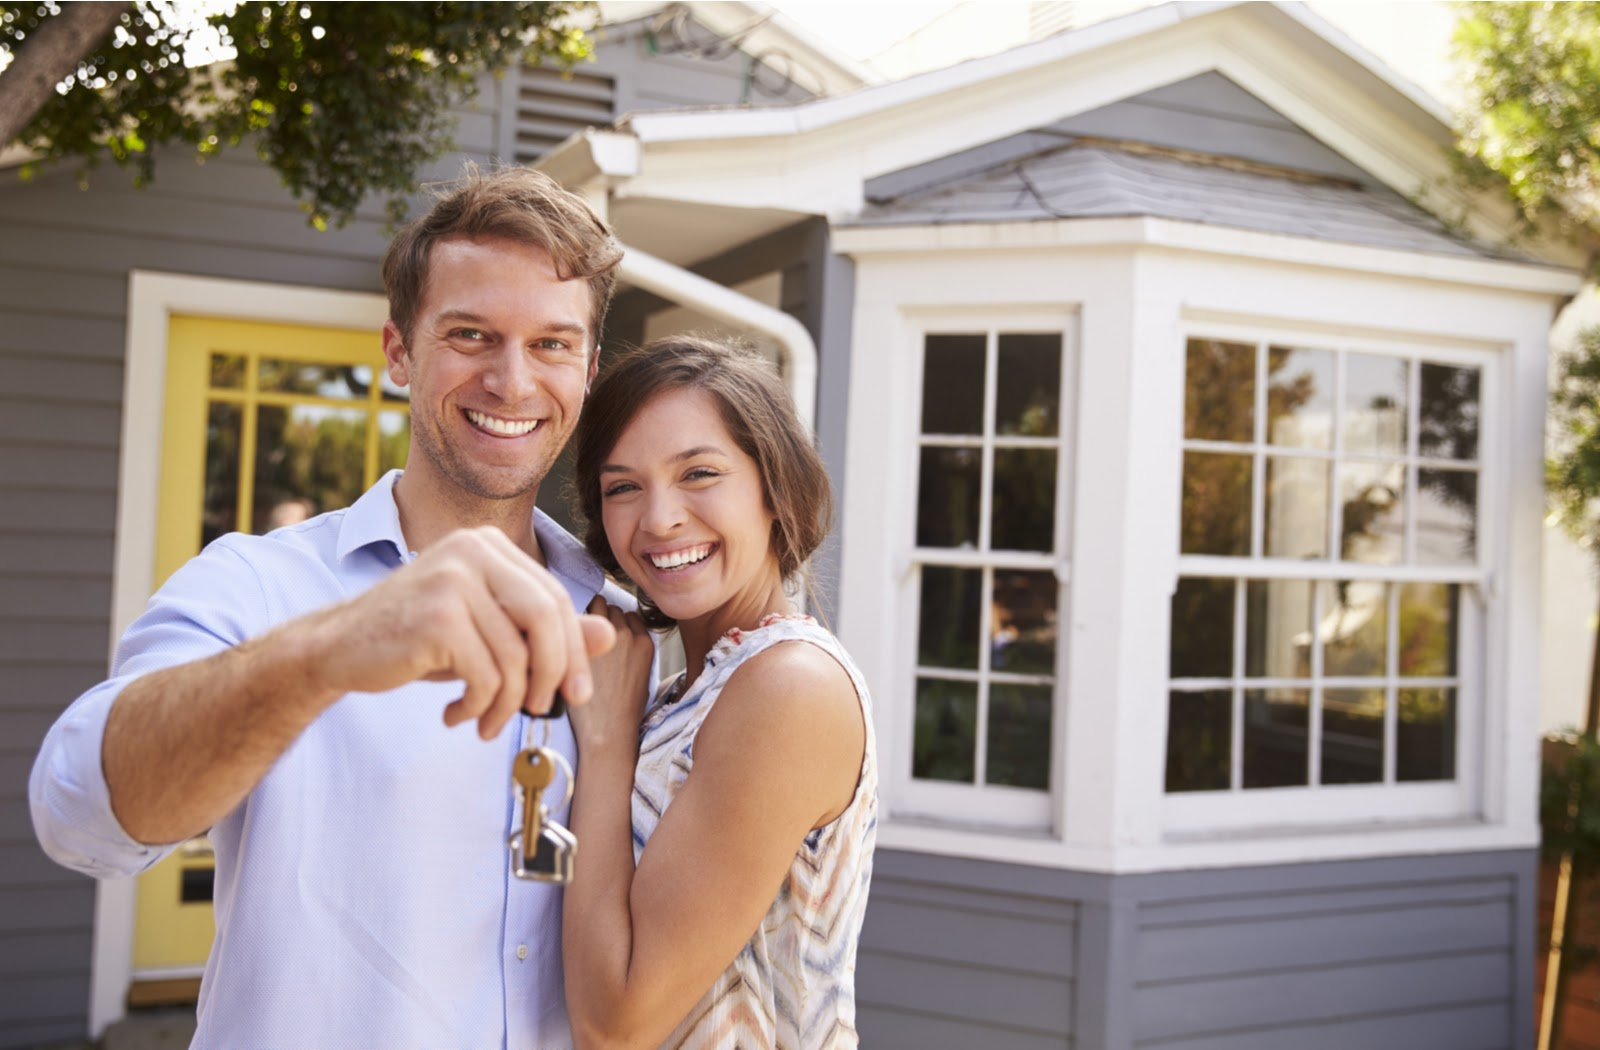 A couple standing in front of a new home they purchased holding the house keys in their hand